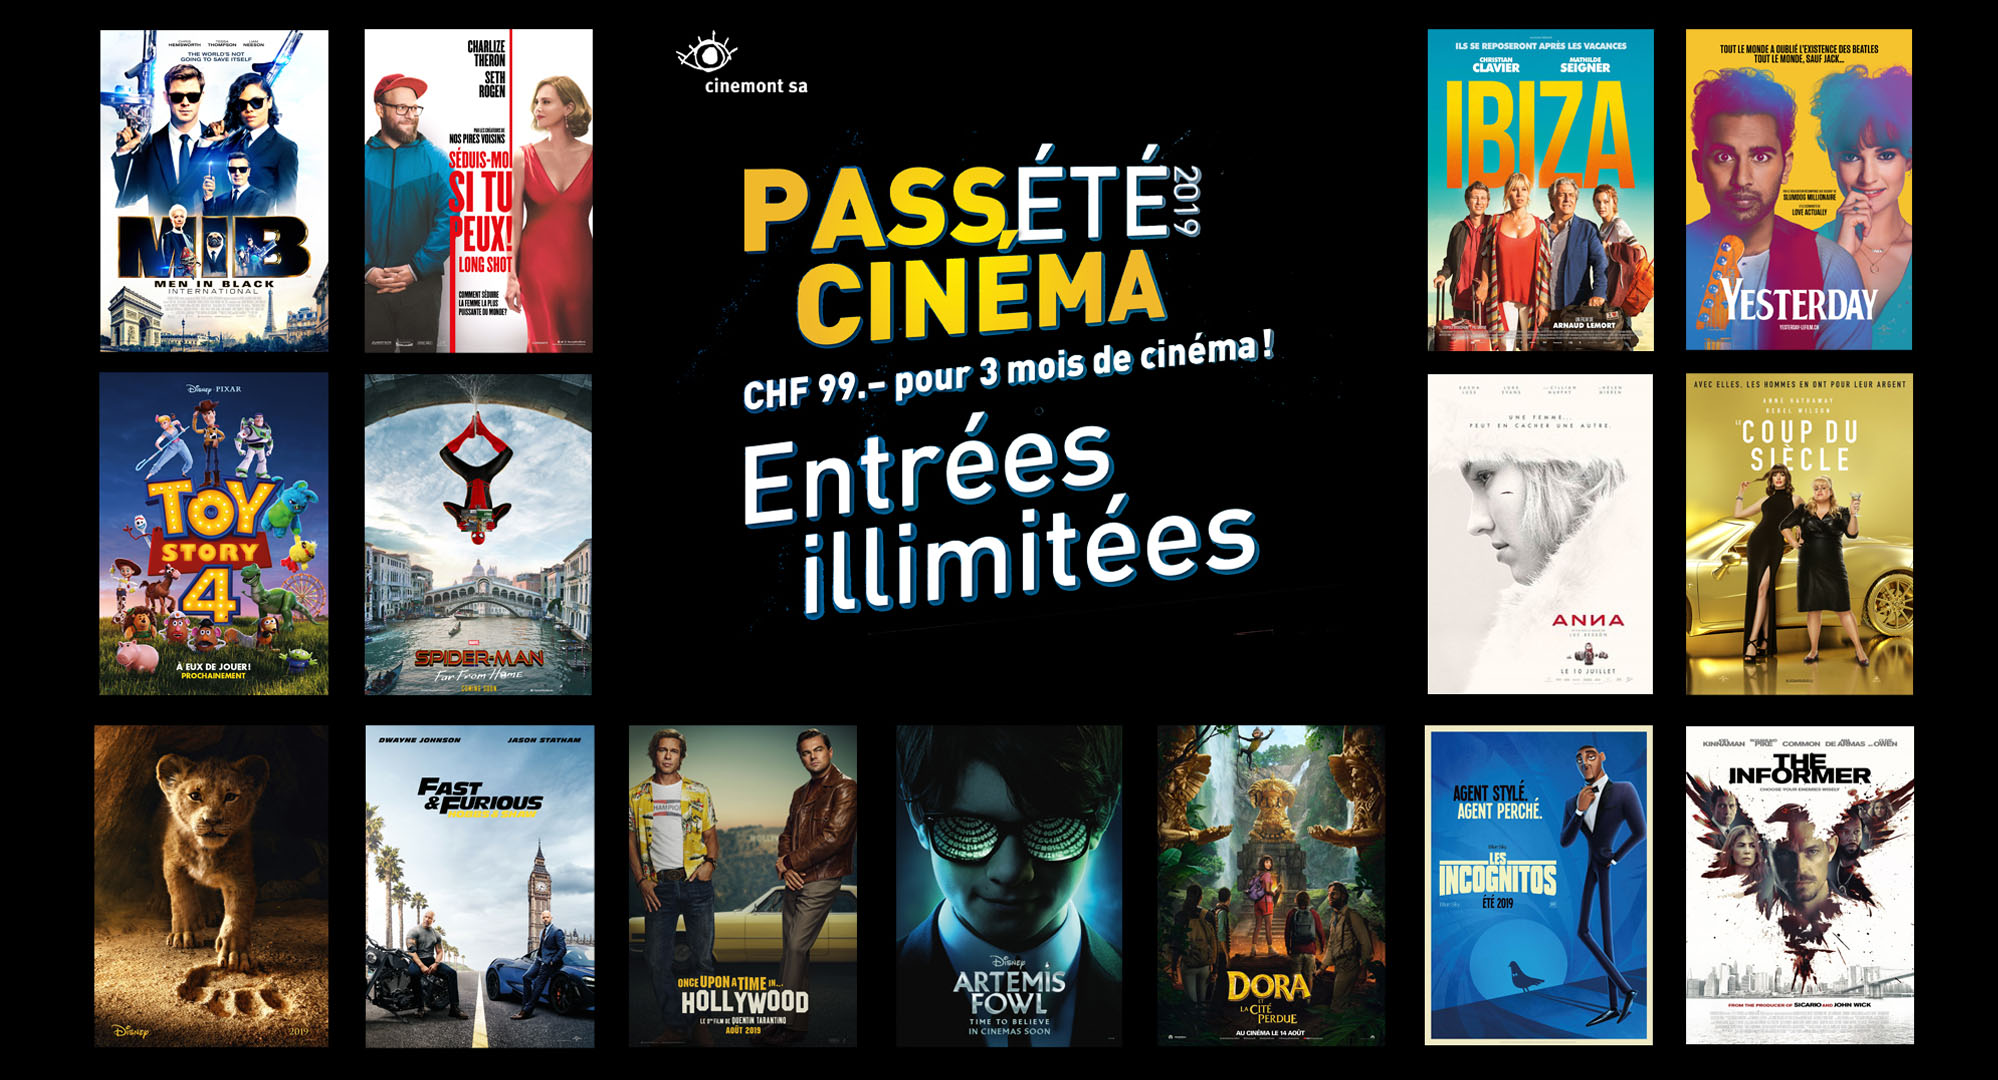 PassCine Filmpropose Cinemont